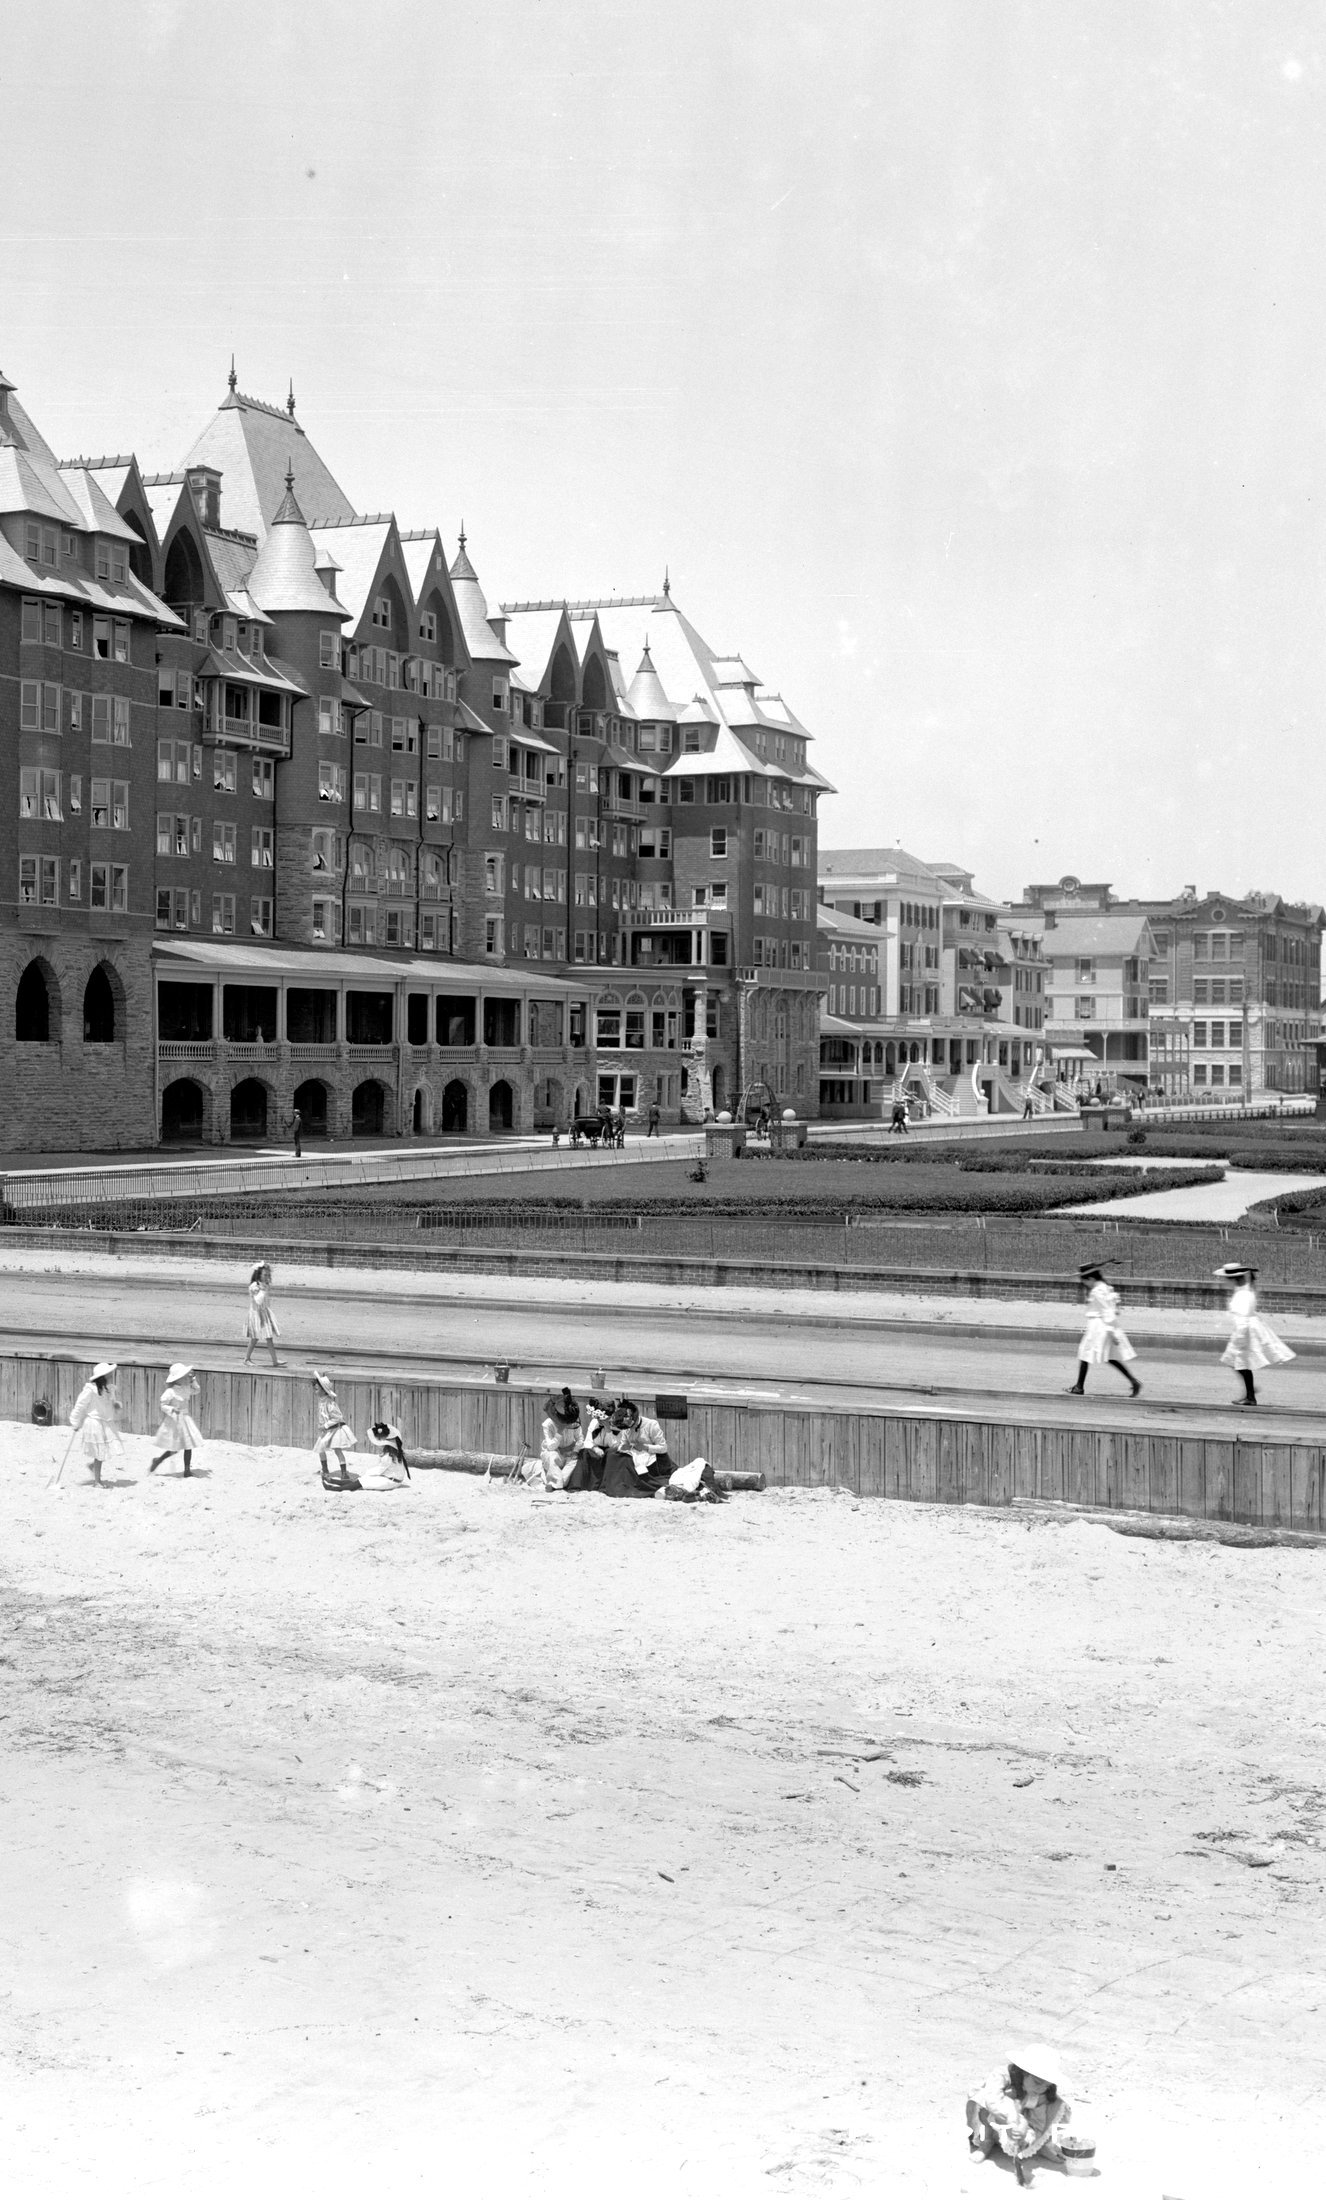 Vintage Jersey Shore beach scenes from the early 1900s (2)